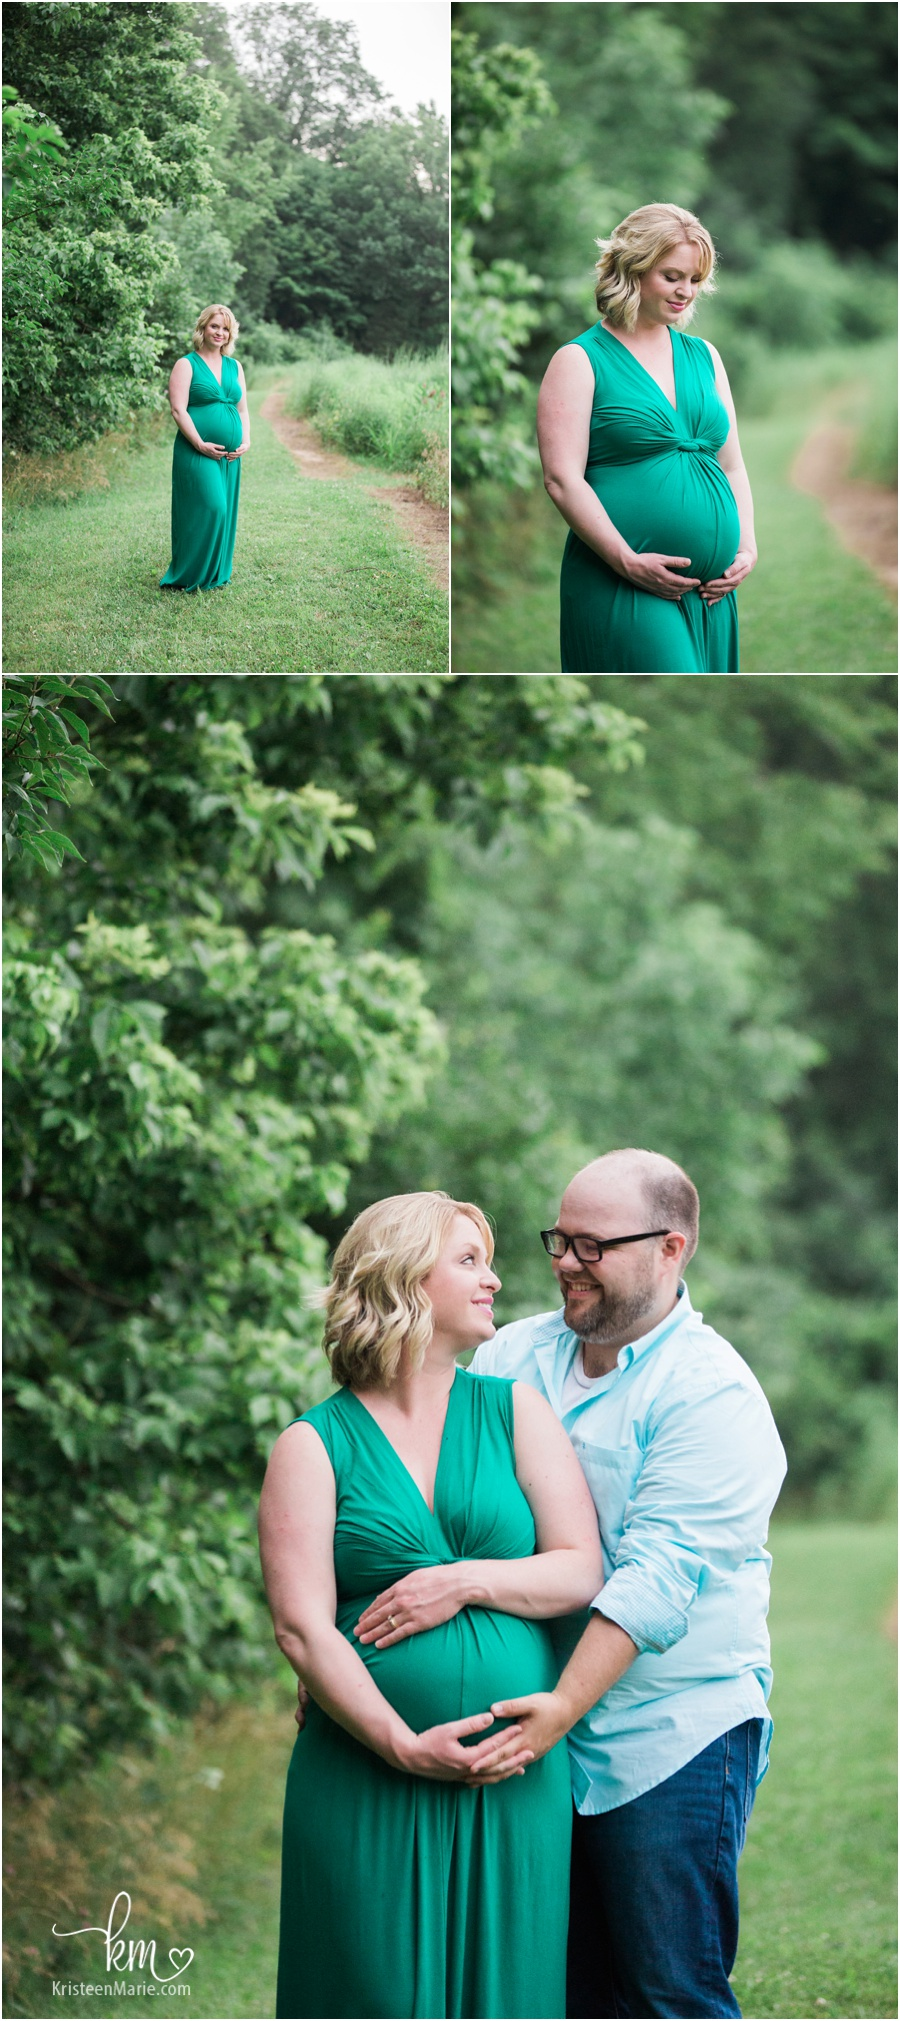 Maternity Photographer in Indianapolis, Indiana